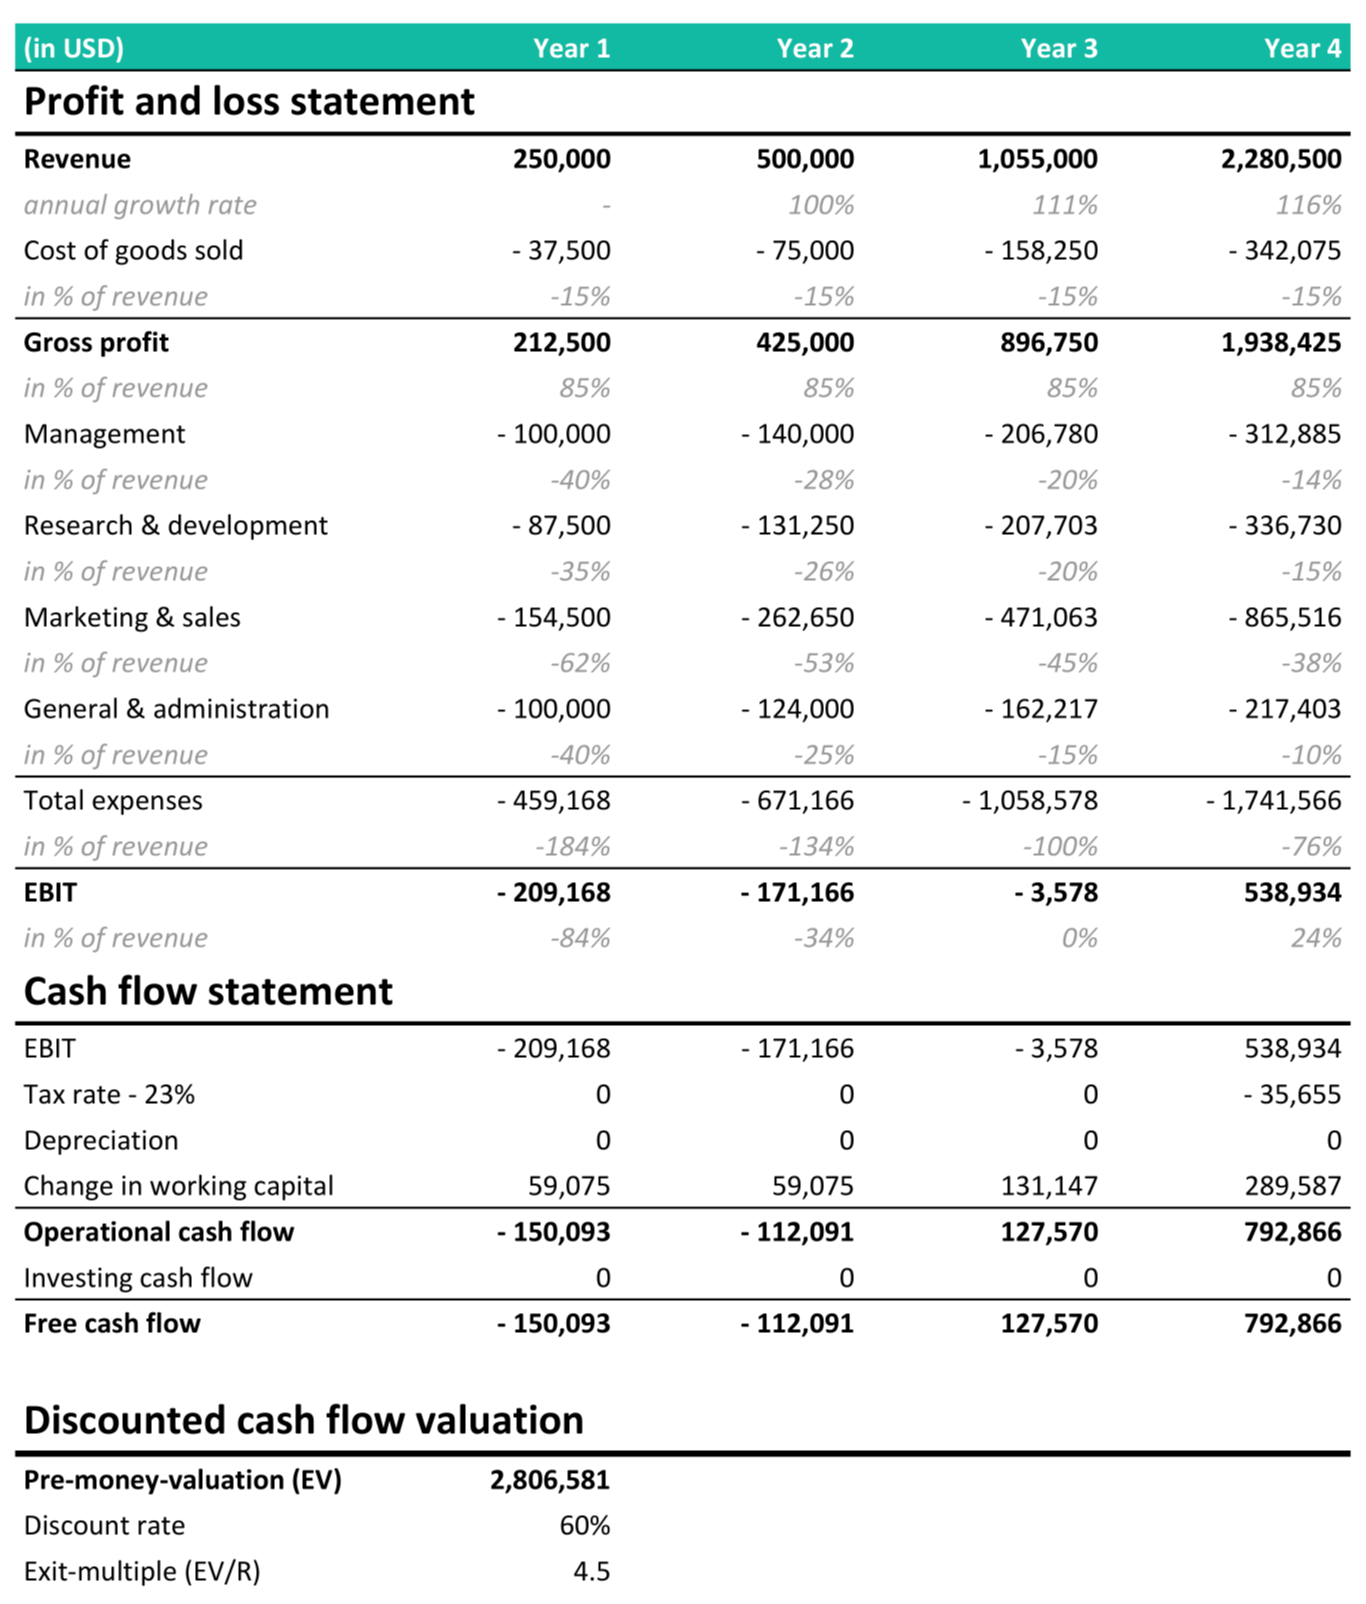 discounted cash flow method (DCF)